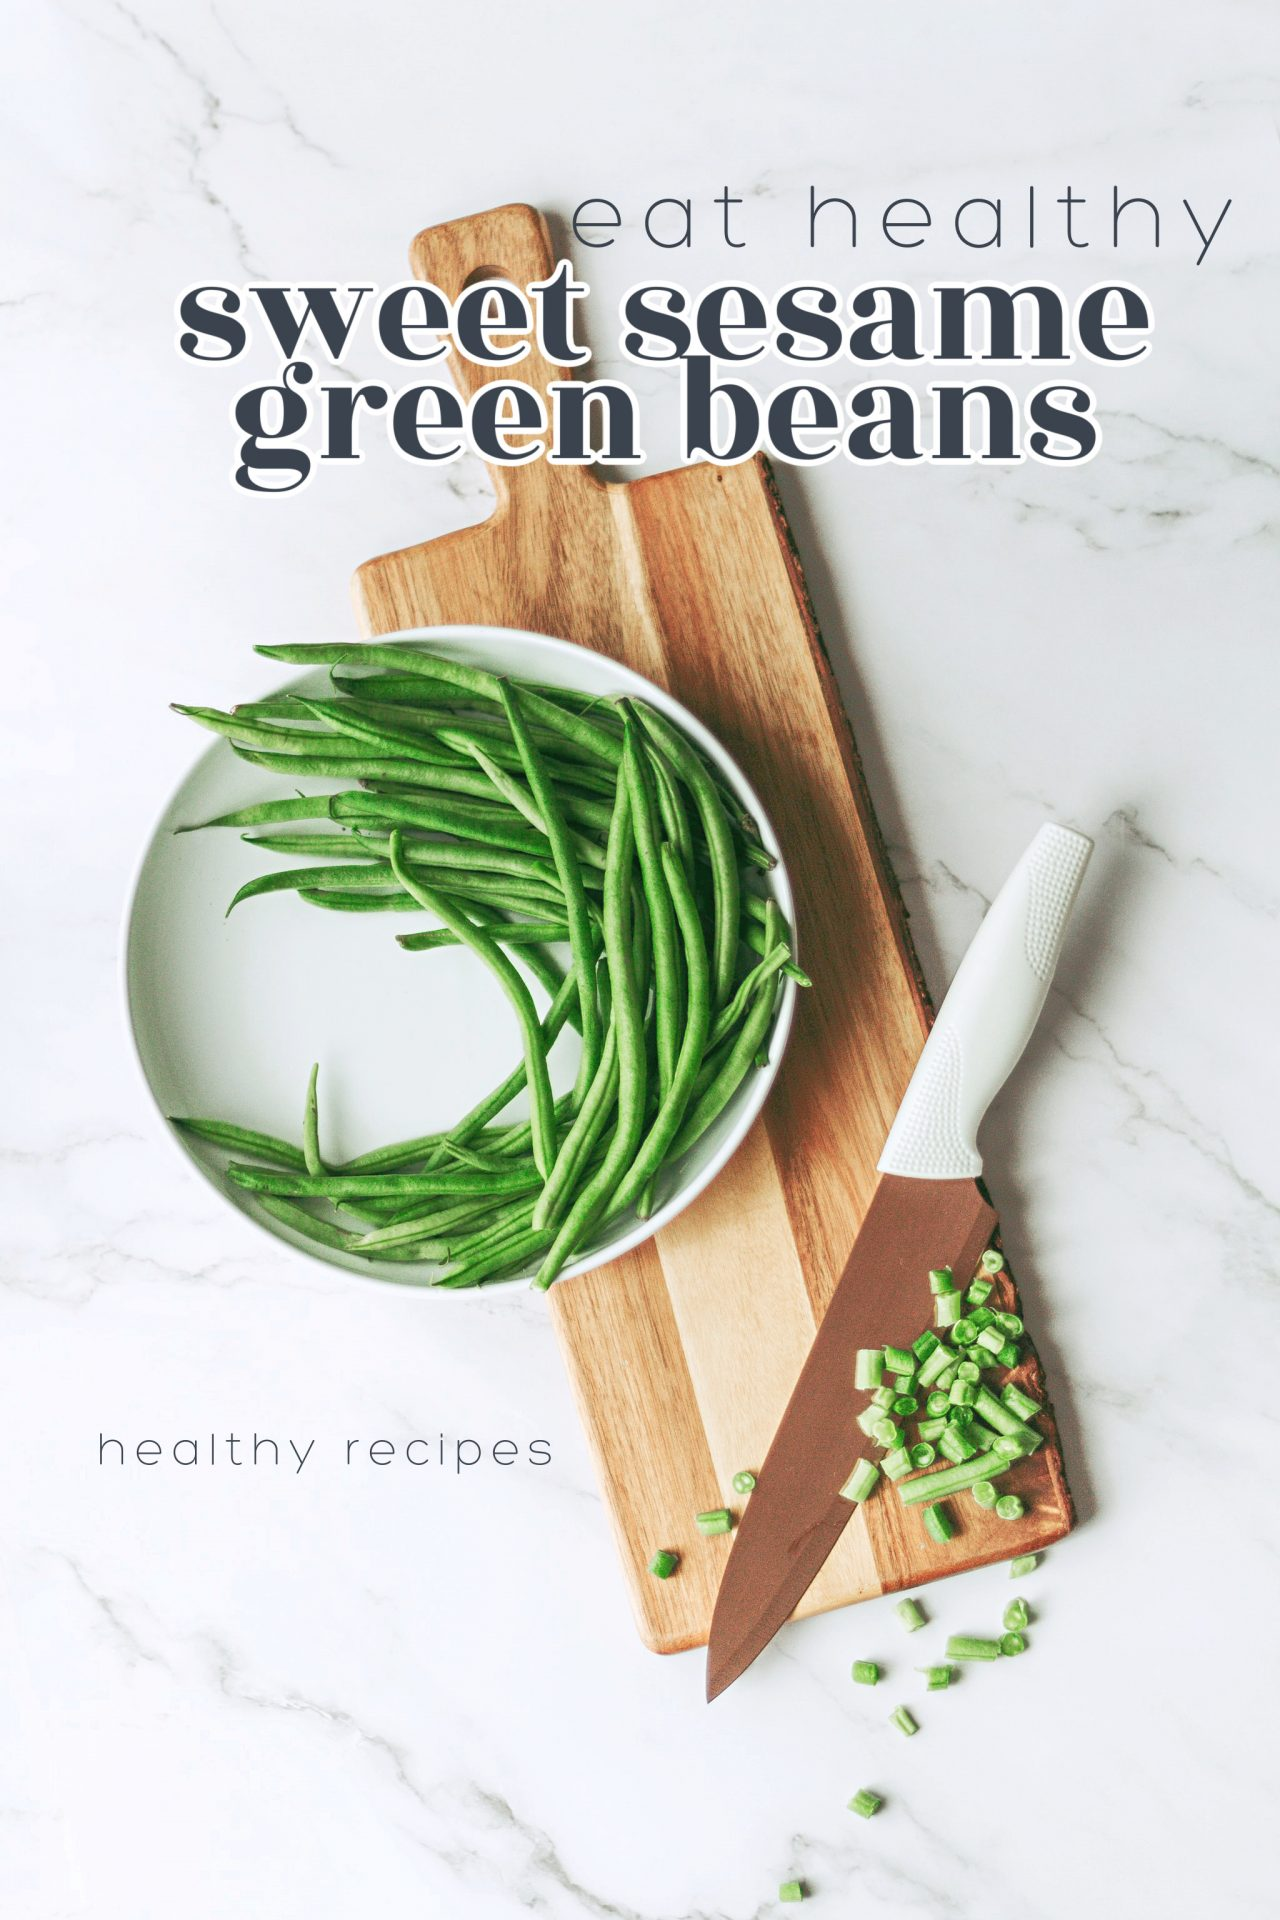 healthy recipes, green beans, green beans healthy, the healthiest green bean recipe, sweet sesame green beans, keto green beans, low carb recipes, 2021